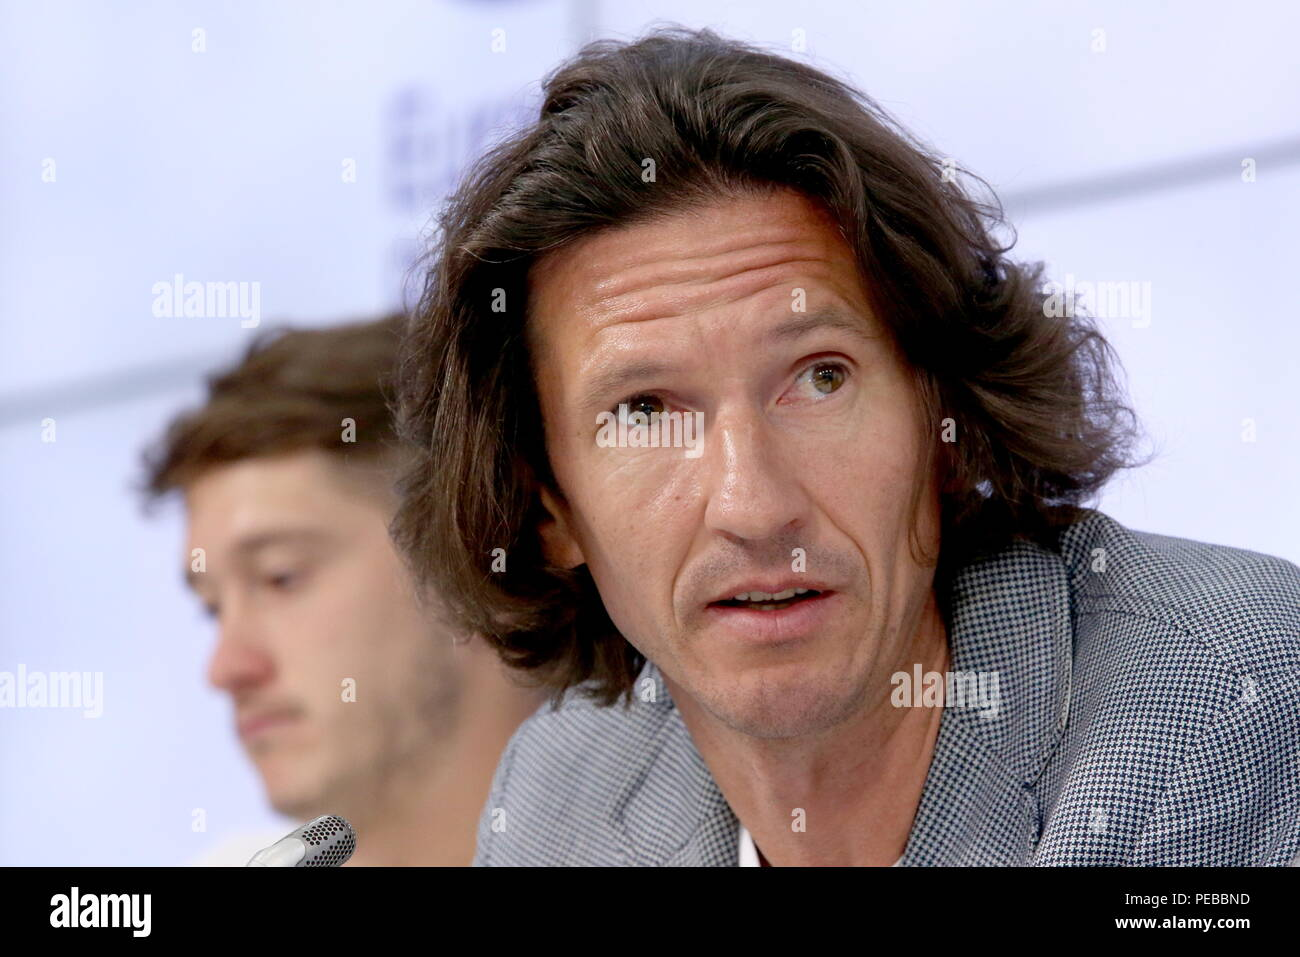 Moscow, Russia. 14th Aug, 2018. MOSCOW, RUSSIA - AUGUST 14, 2018: Alexei Smertin, anti-racism and discrimination inspector of the Russian Football Union, attends a press conference to mark the beginning of the UTLC Cup - Young Eurasian Stars 2018, the second international football tournament for players of European and Asian U14 teams, in Moscow. Vladimir Gerdo/TASS Credit: ITAR-TASS News Agency/Alamy Live News - Stock Image